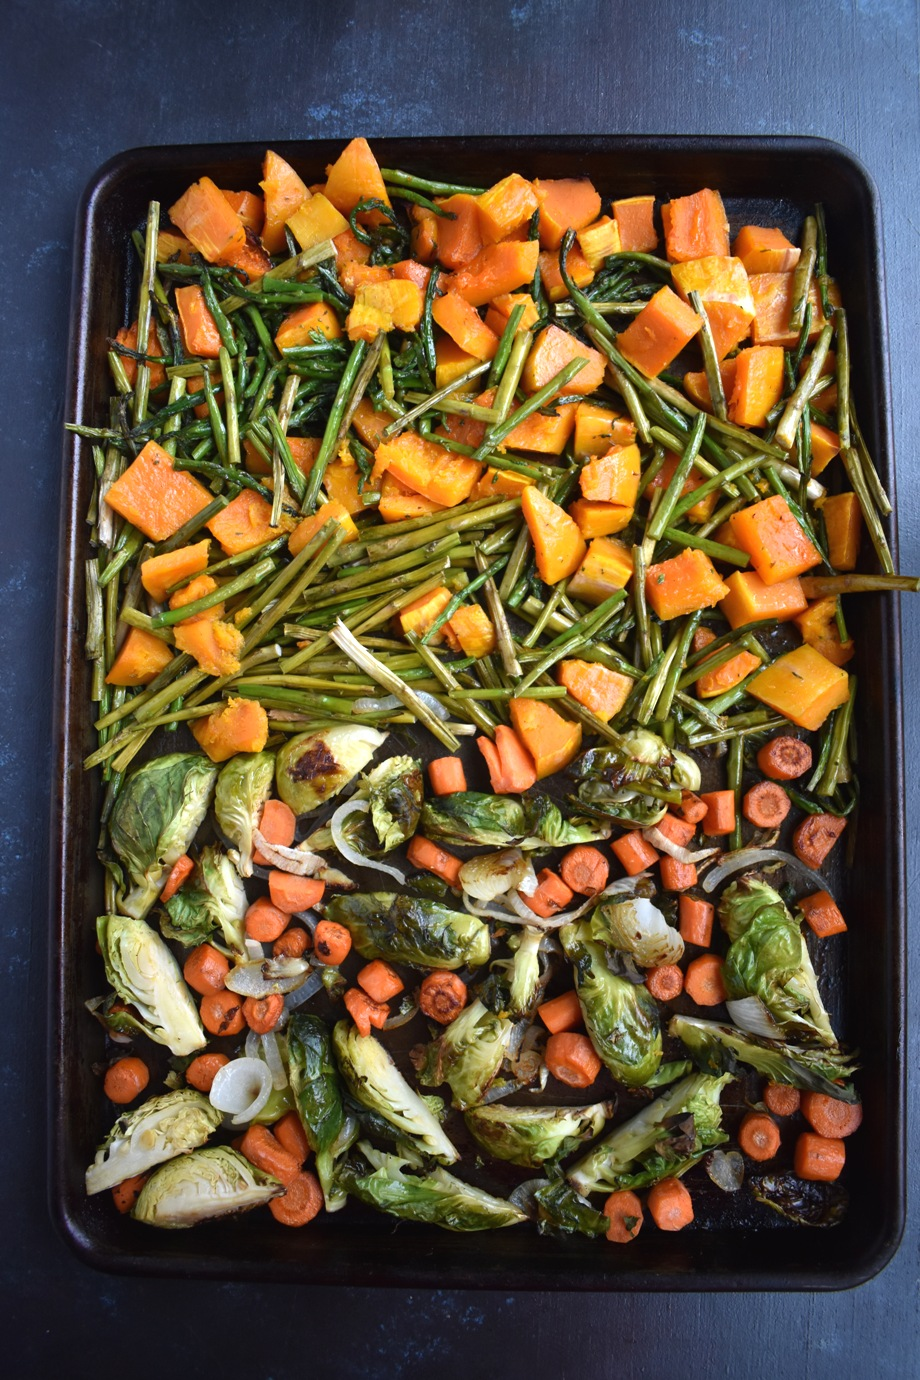 Tray of roasted vegetables